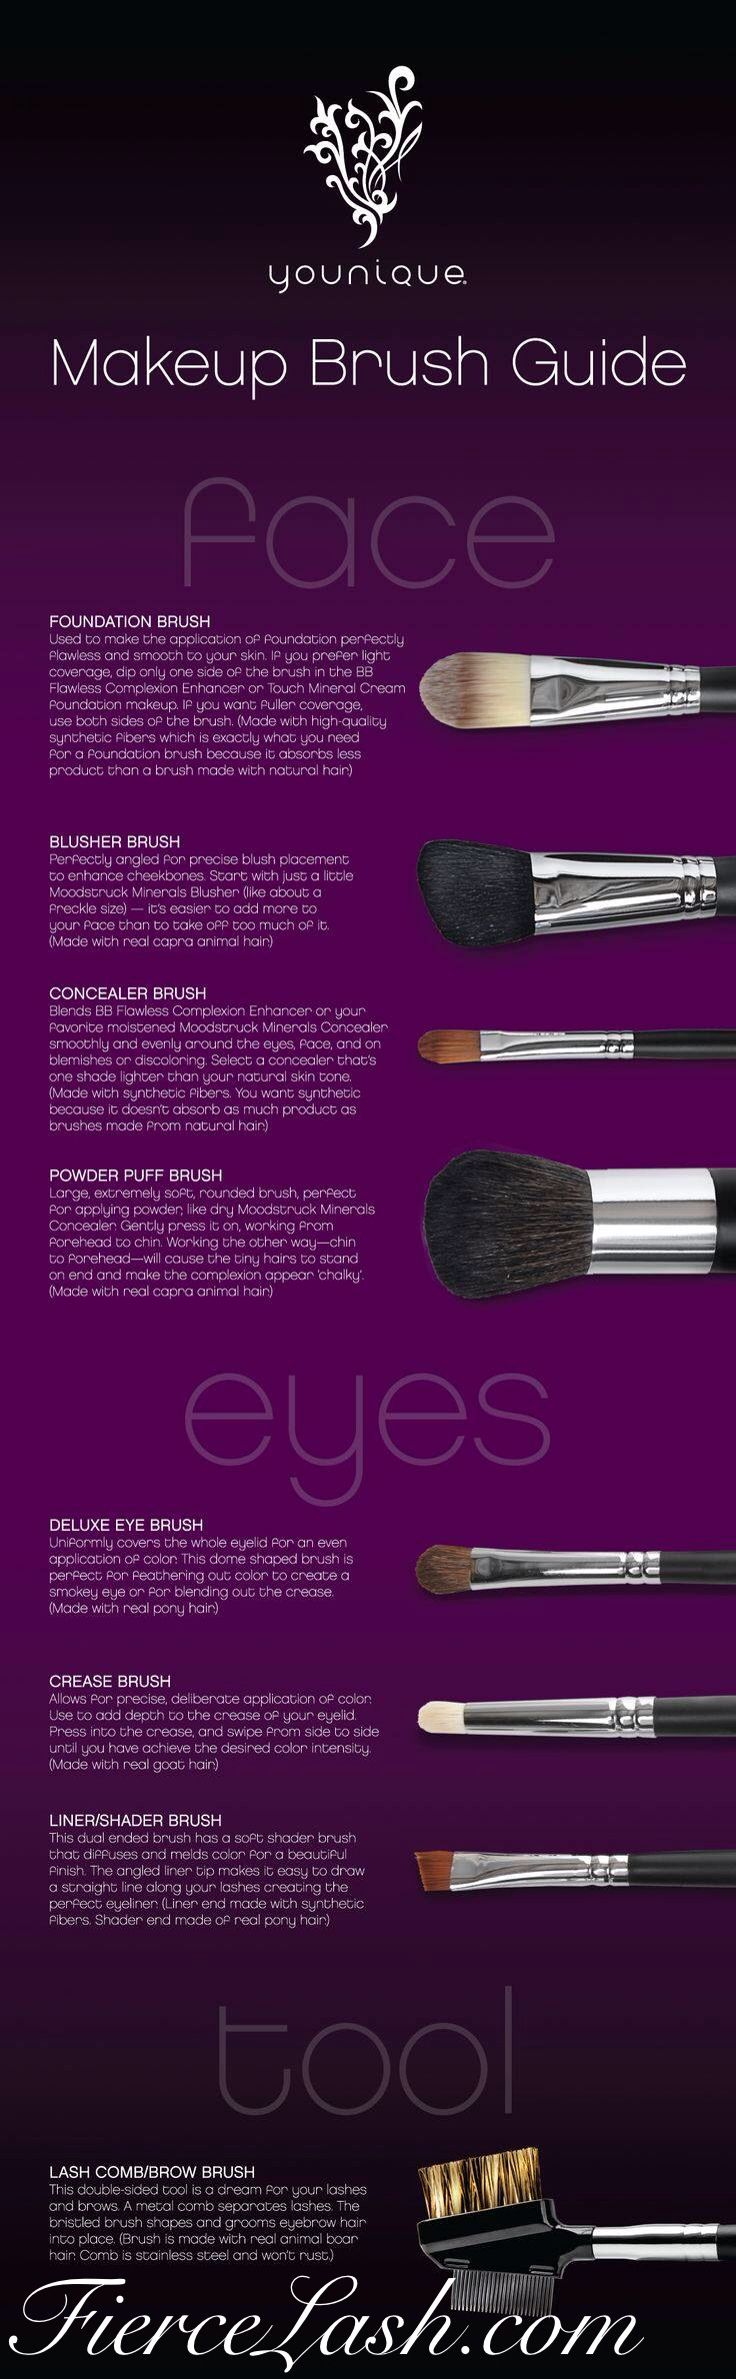 Cruelty free and made to last a lifetime. I love the quality of the Younique makeup brushes.  Www.youniqueproducts.com/michellemochal